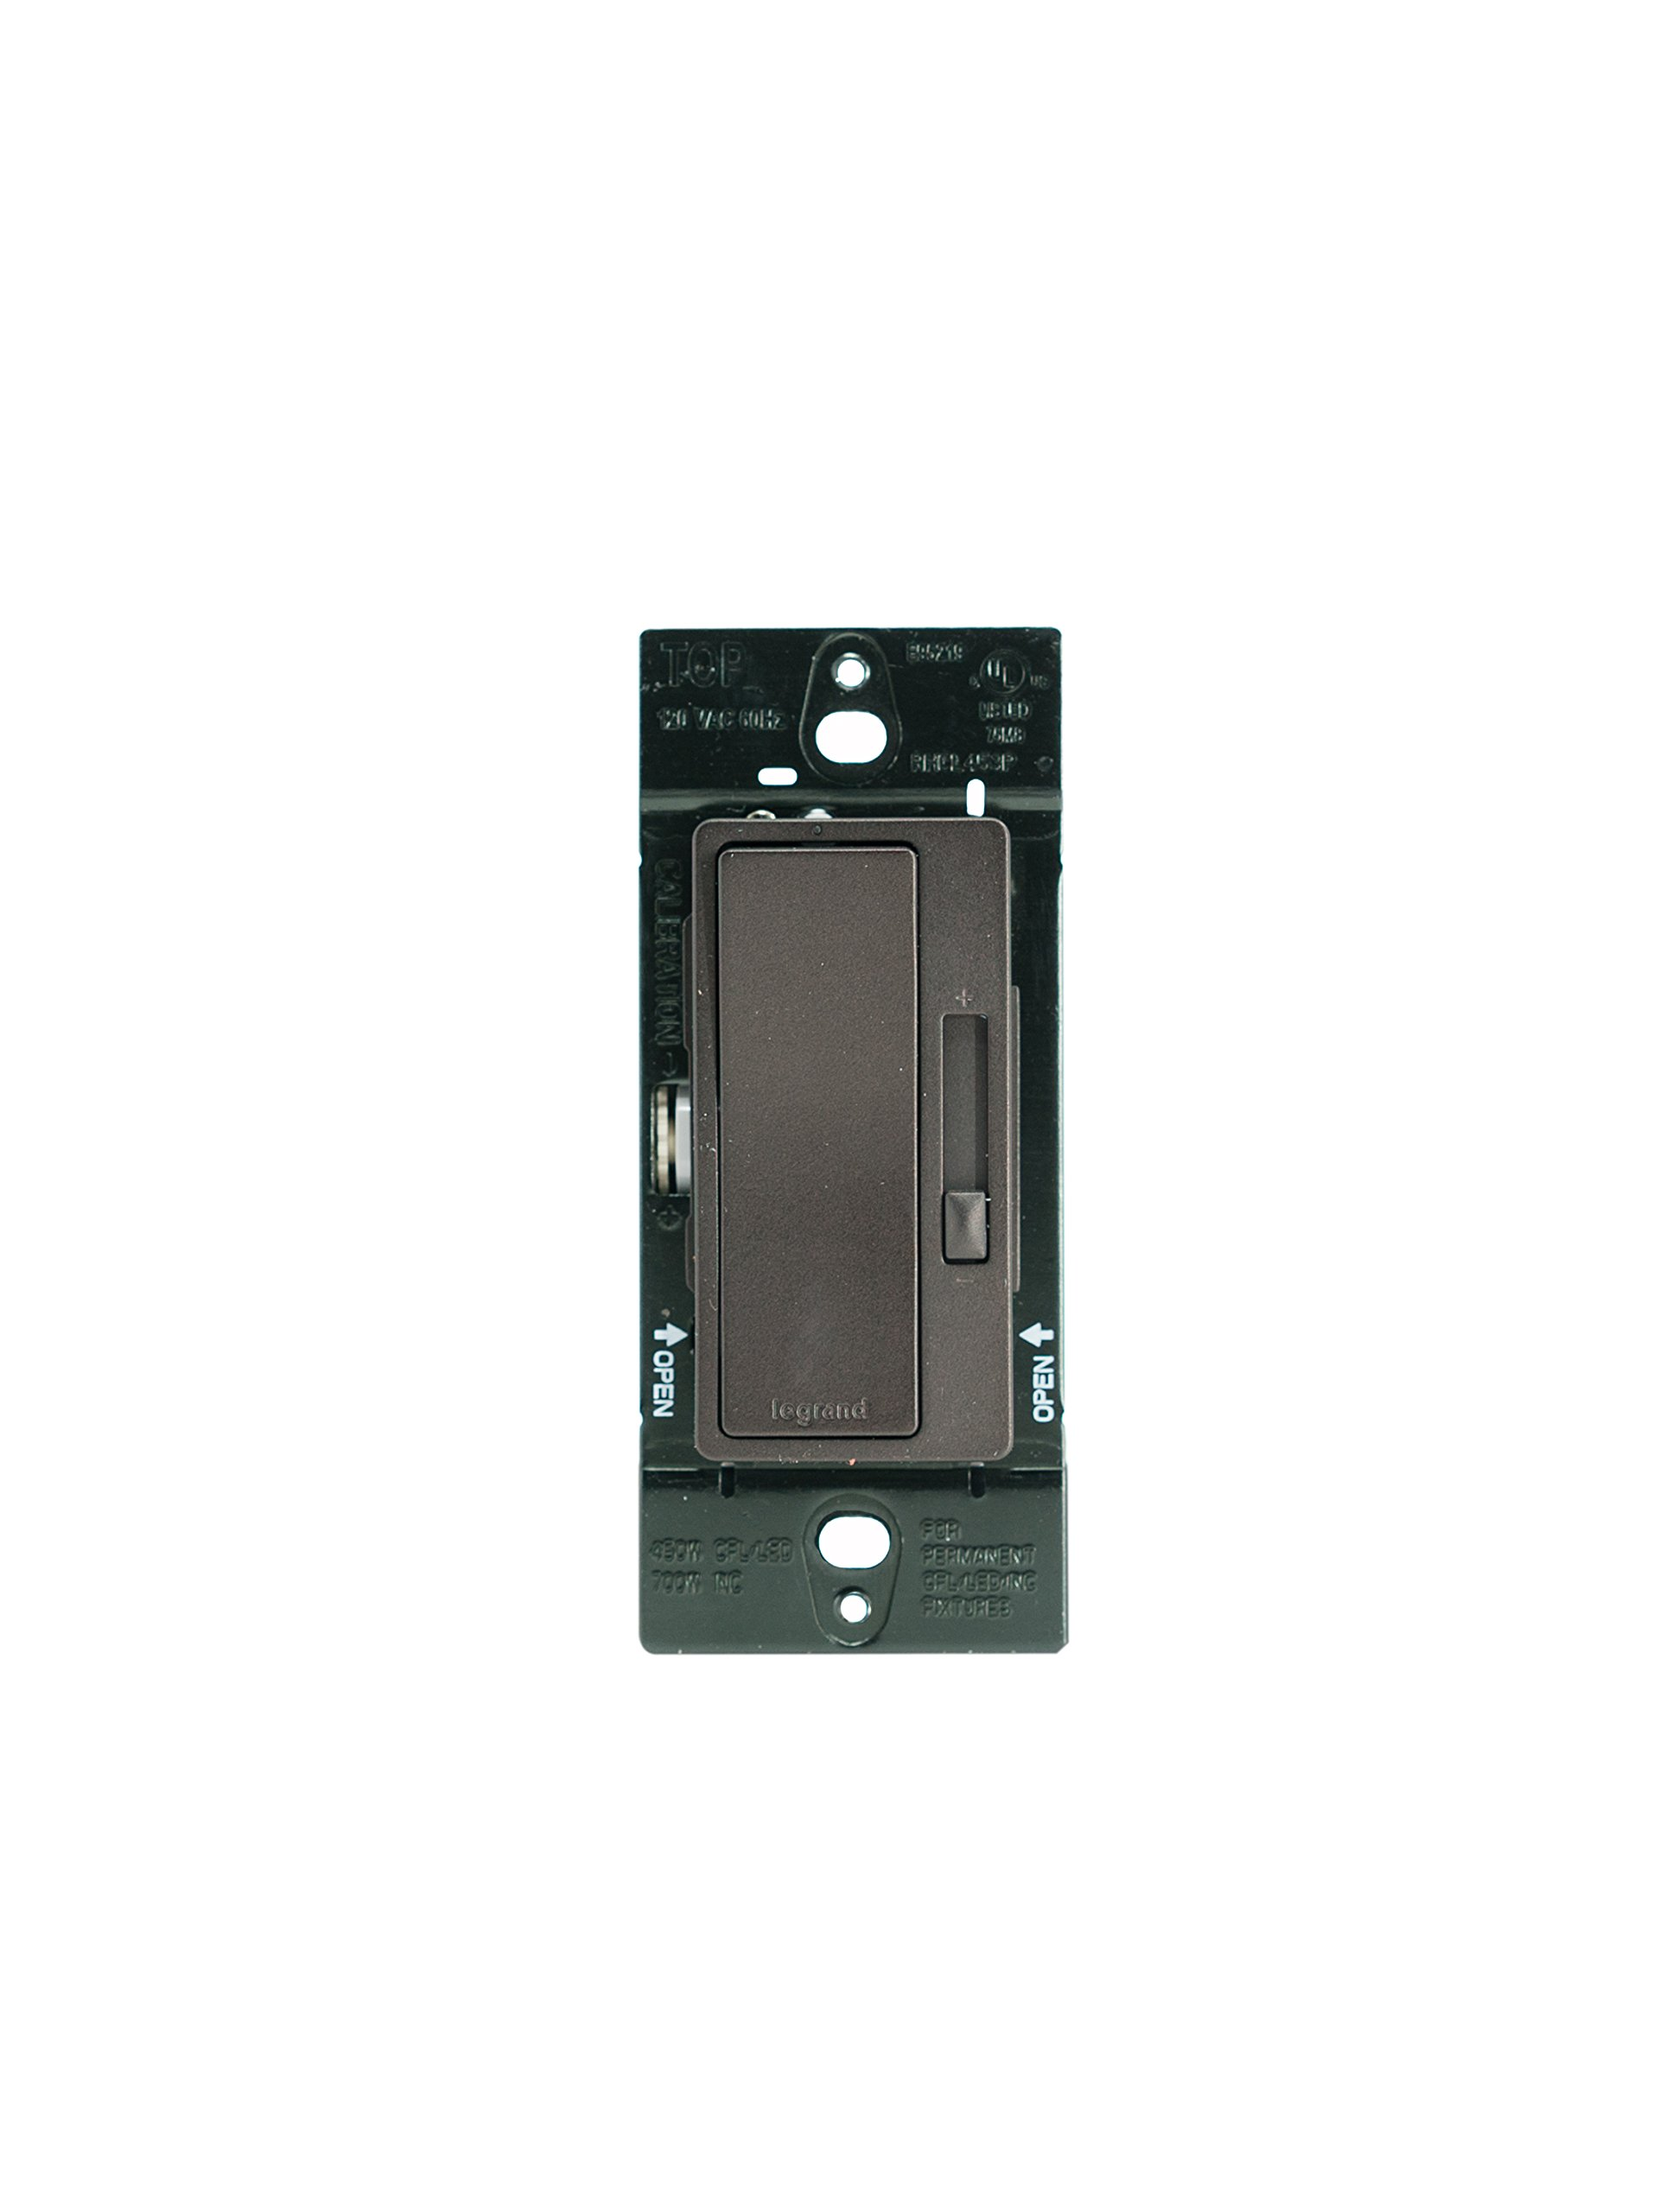 Legrand-Pass & Seymour RHCL453PDBCCV4 CFL/ LED Dimmer Switch, 3 Way / Single Pole Universal Dimmer Switch, Black